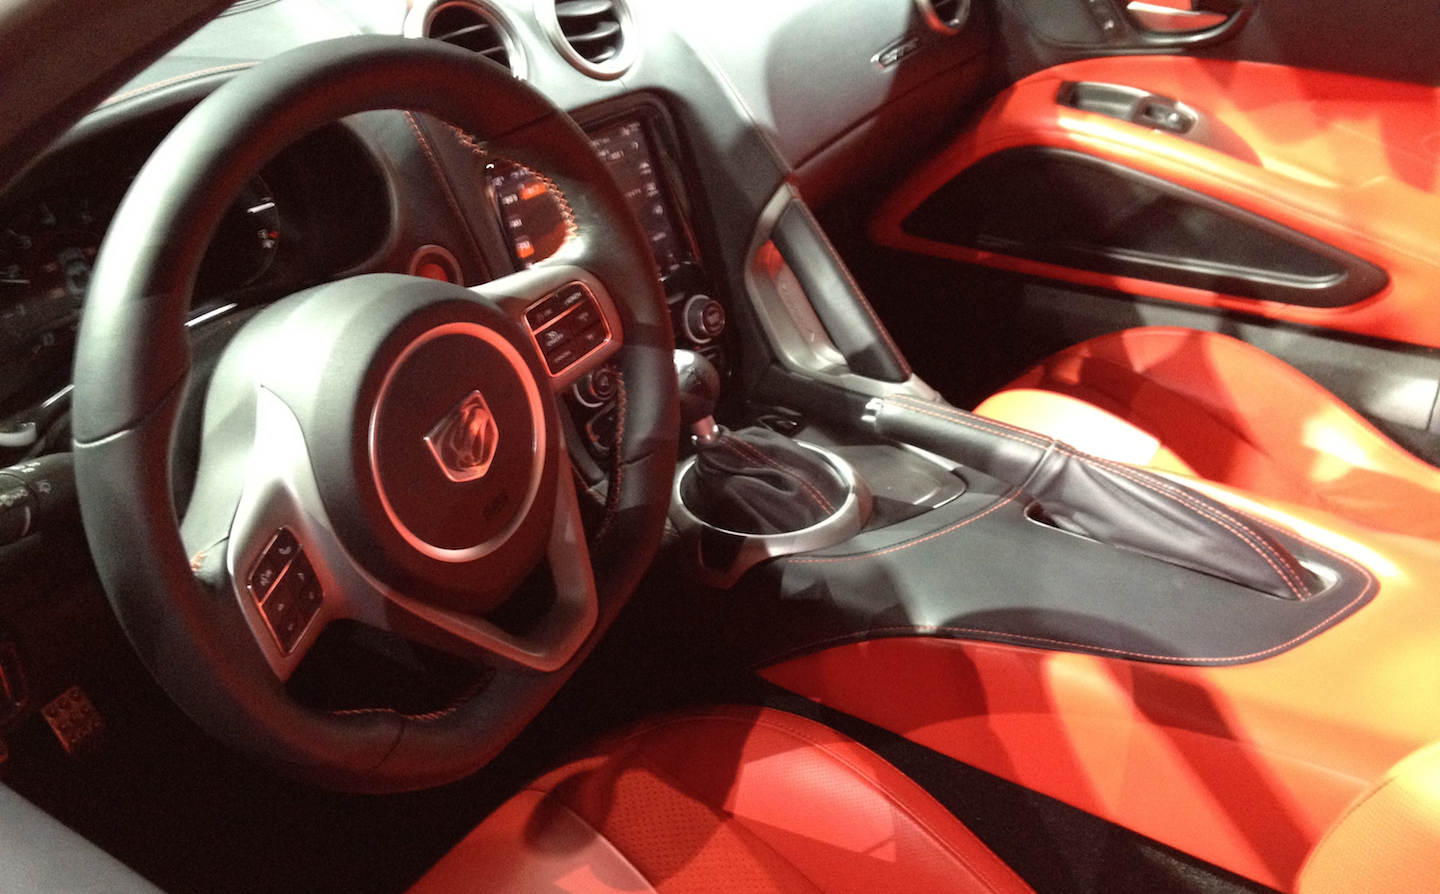 2013 Dodge Viper coupe interior